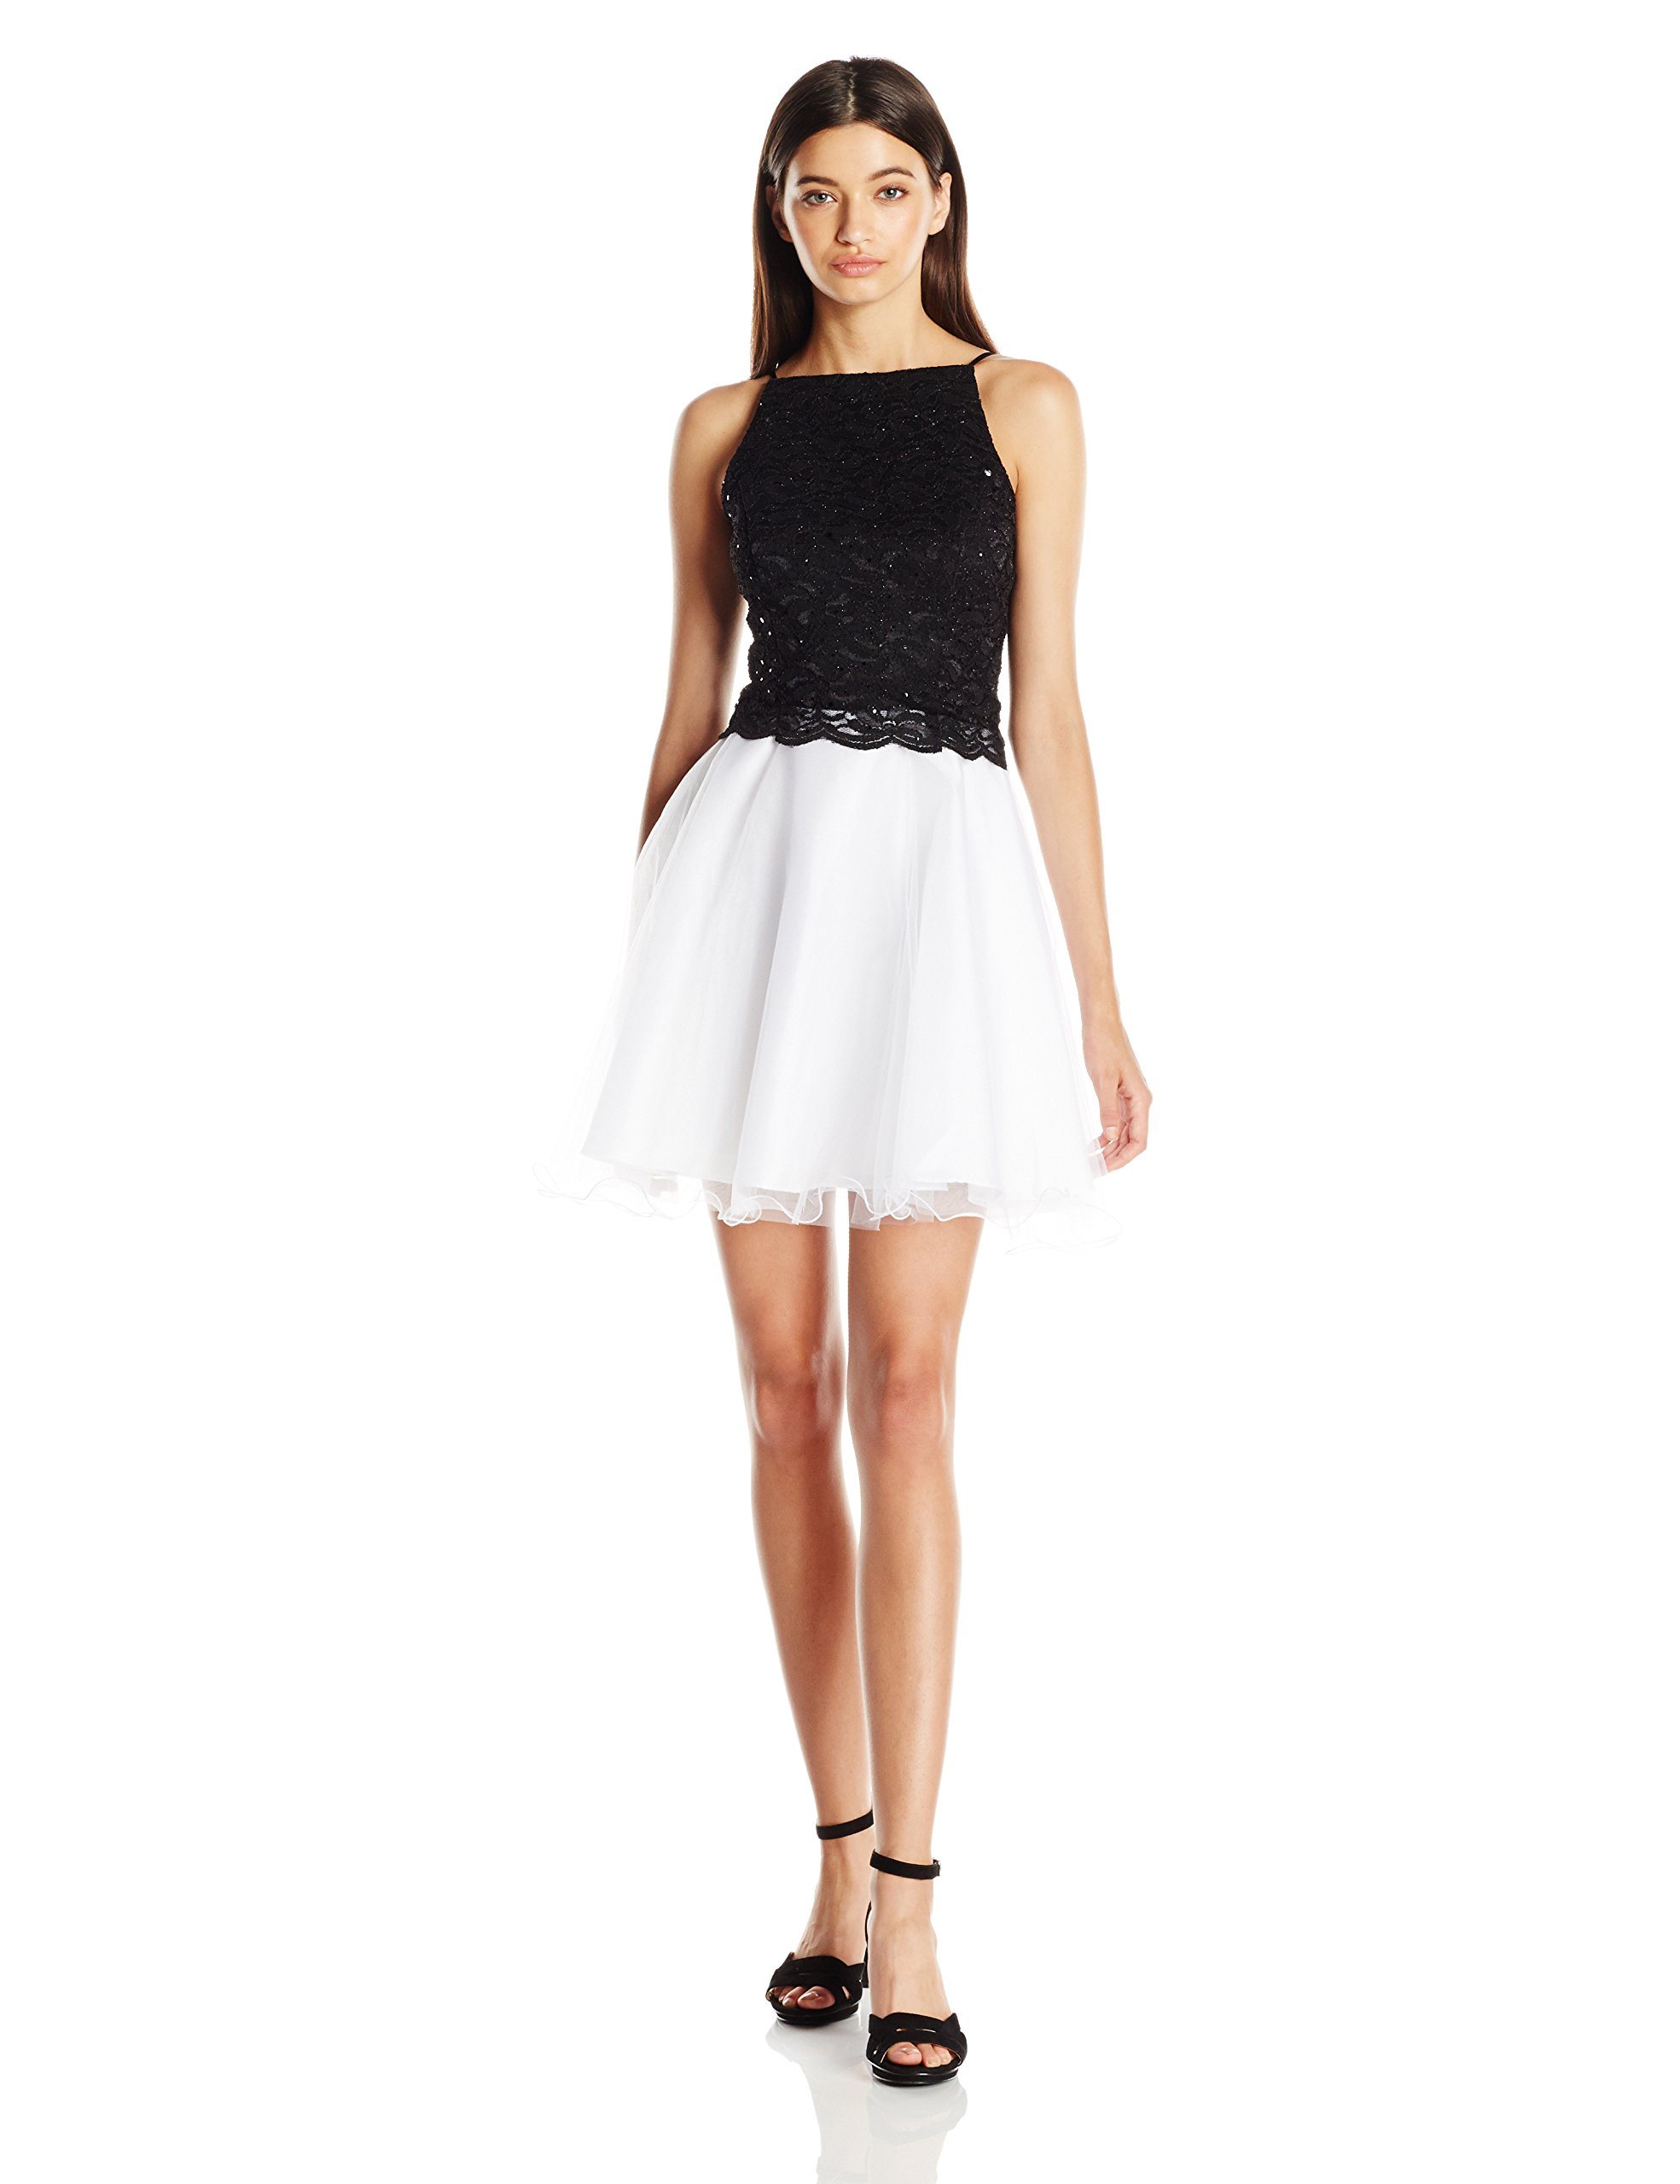 Jump Juniors Tulle Skirt Party Dress with Glitter Lace Top, Black/White, 5